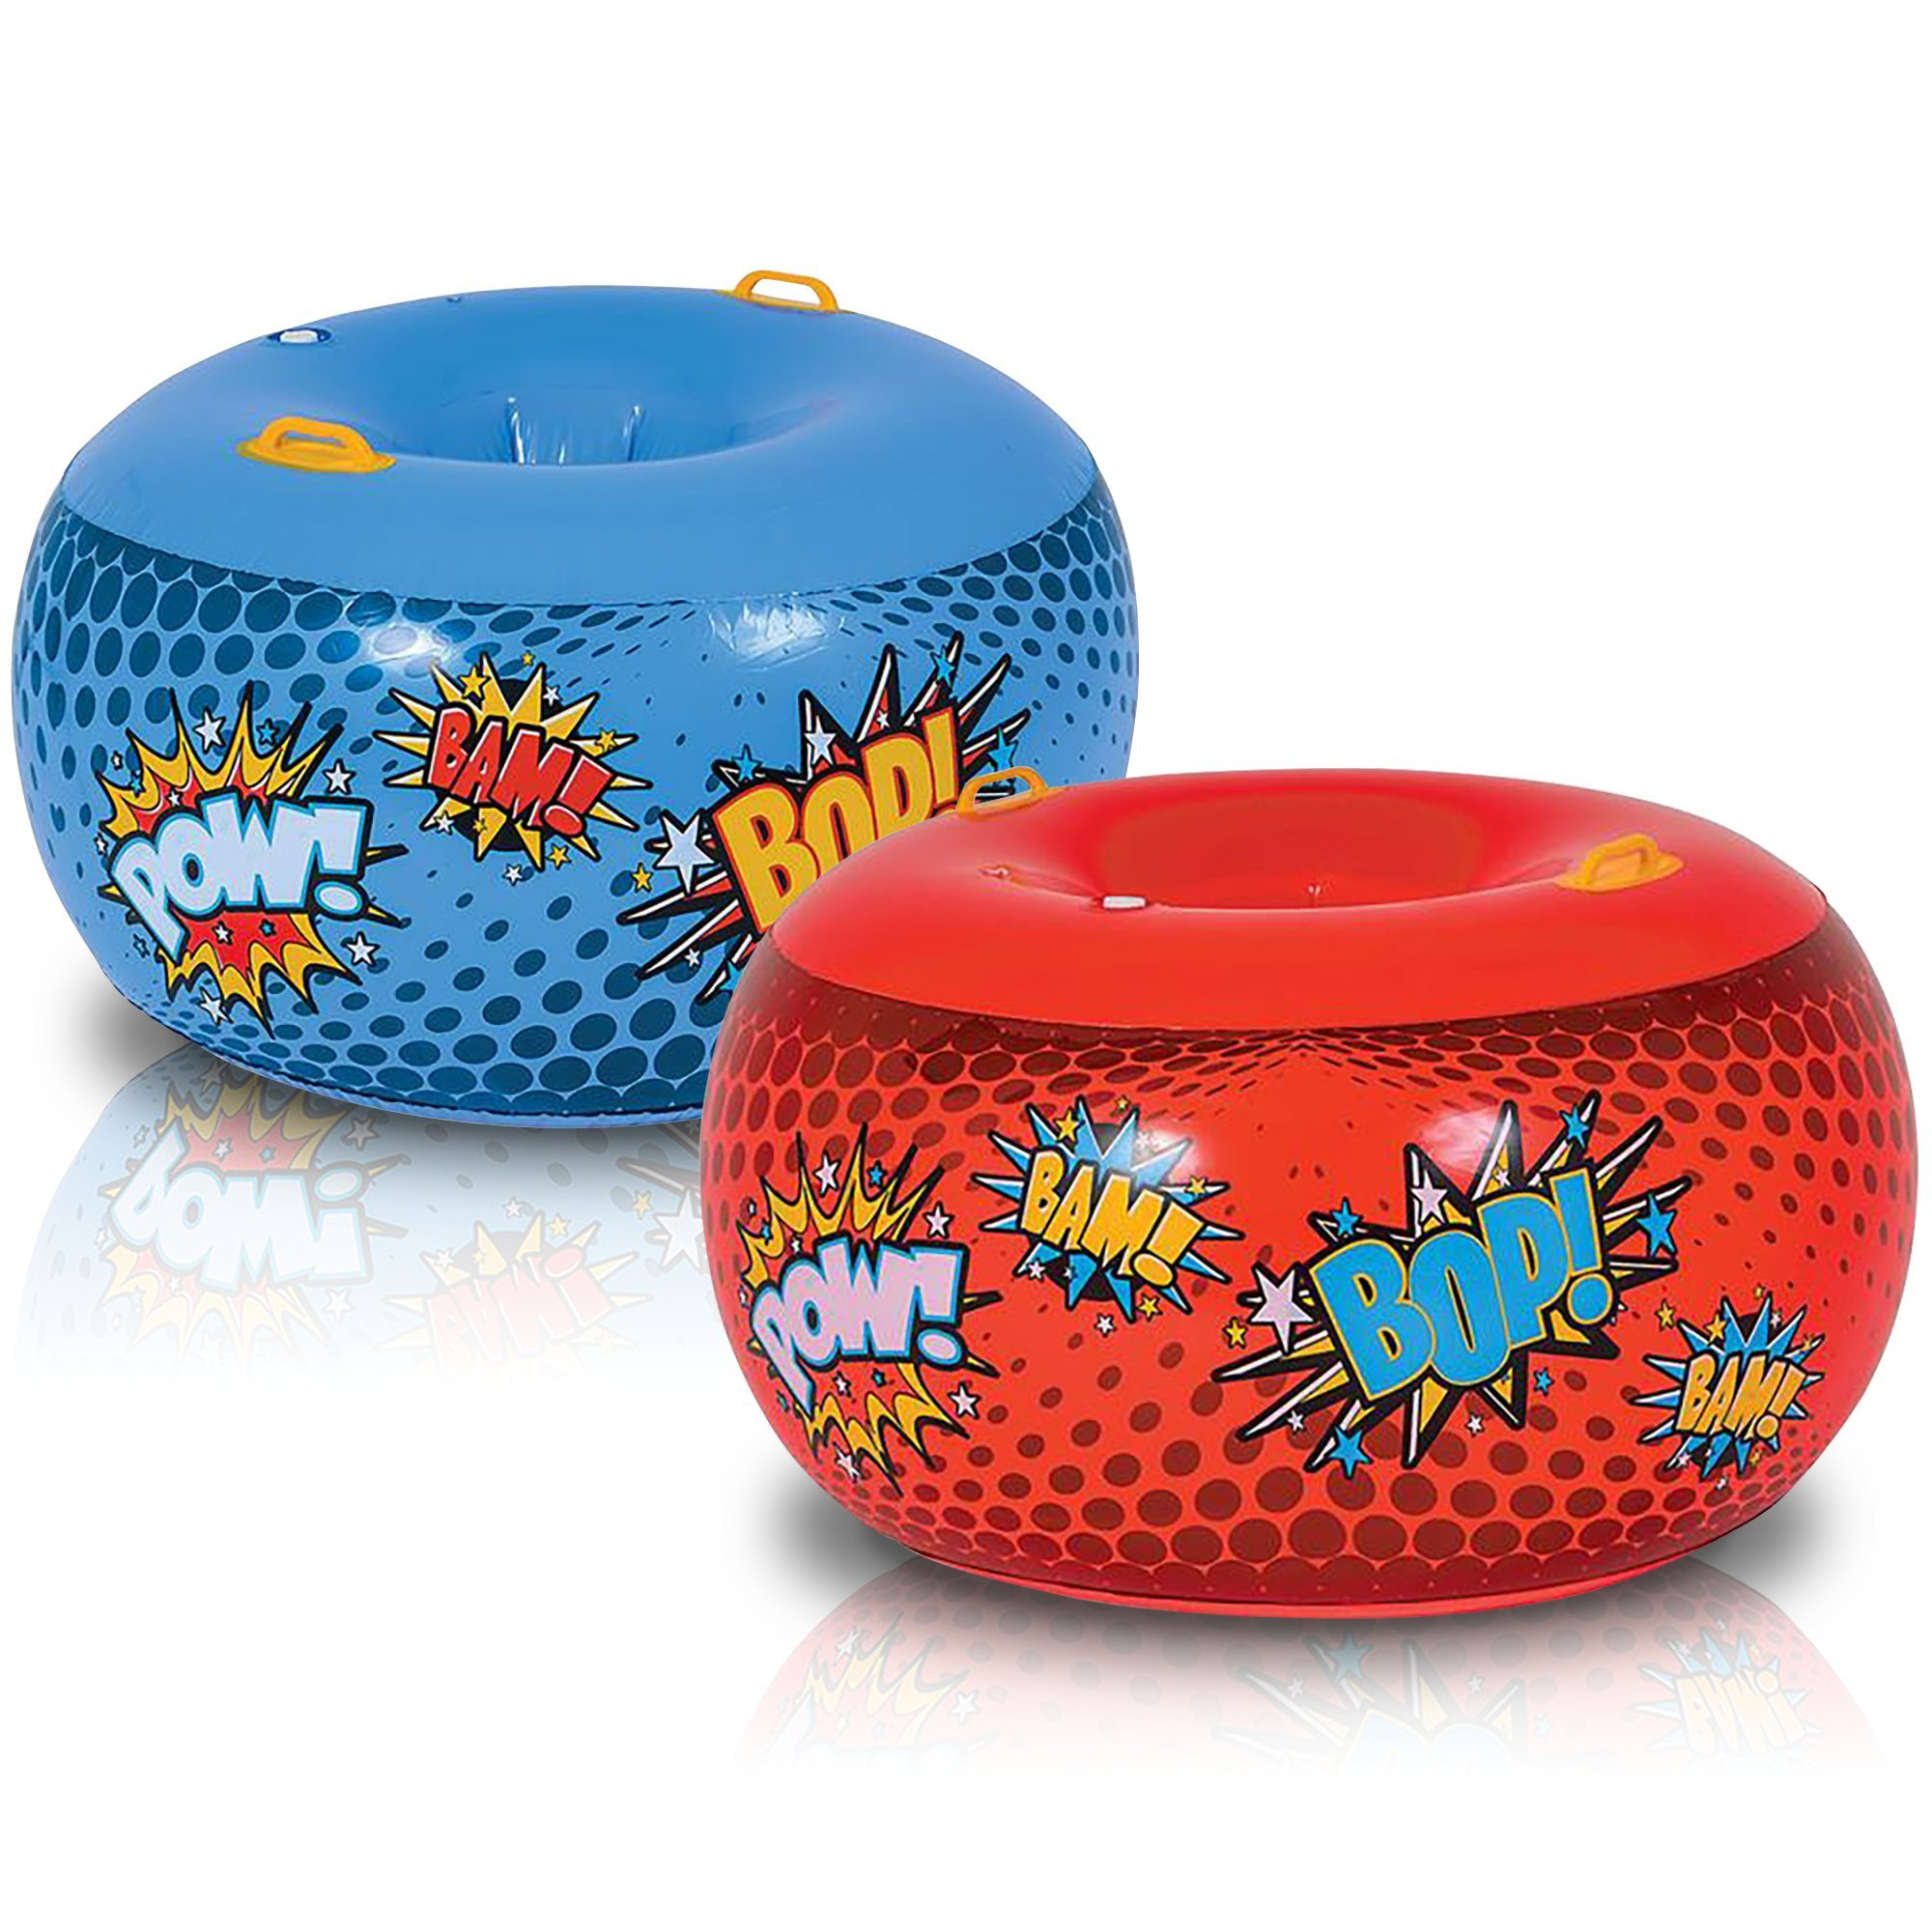 ArtCreativity Inflatable Body Bumper Set for Kids - Pack of 2 - Colorful Bump Ball Toys with Handles - Great Summer Game, Fun Birthday Party Activity, Gift Idea for Boys and Girls - Red and Blue